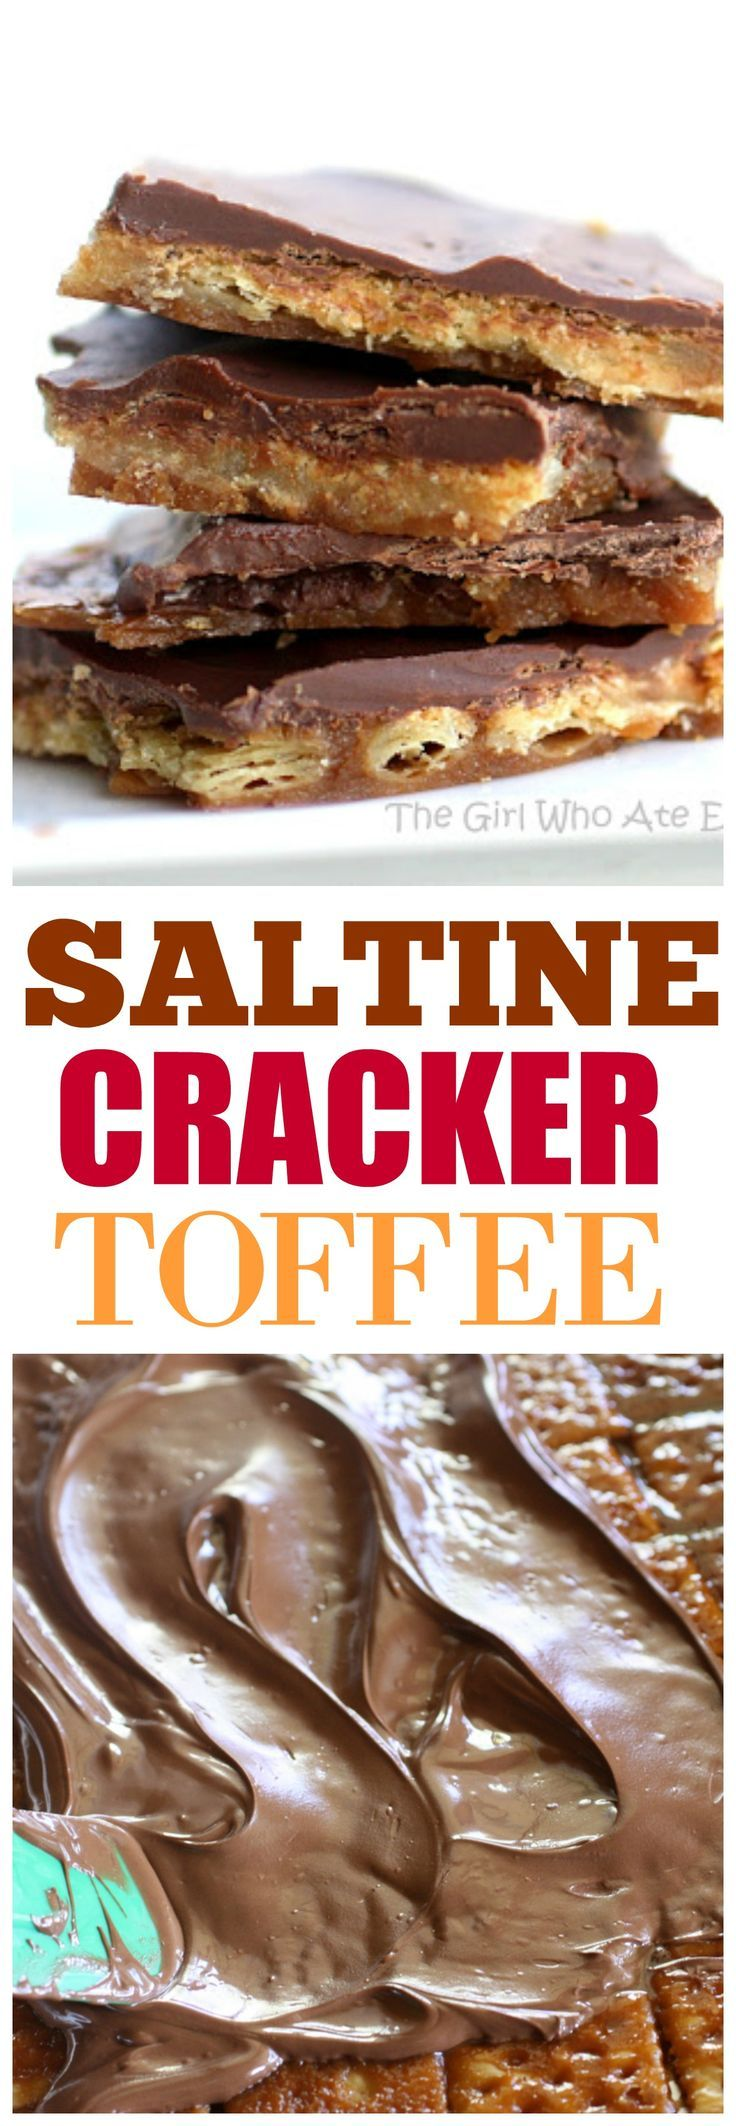 Saltine Cracker Toffee - my grandma's recipe and it's always a crowd pleaser. the-girl-who-ate-everything.com (Fall Bake Sale)